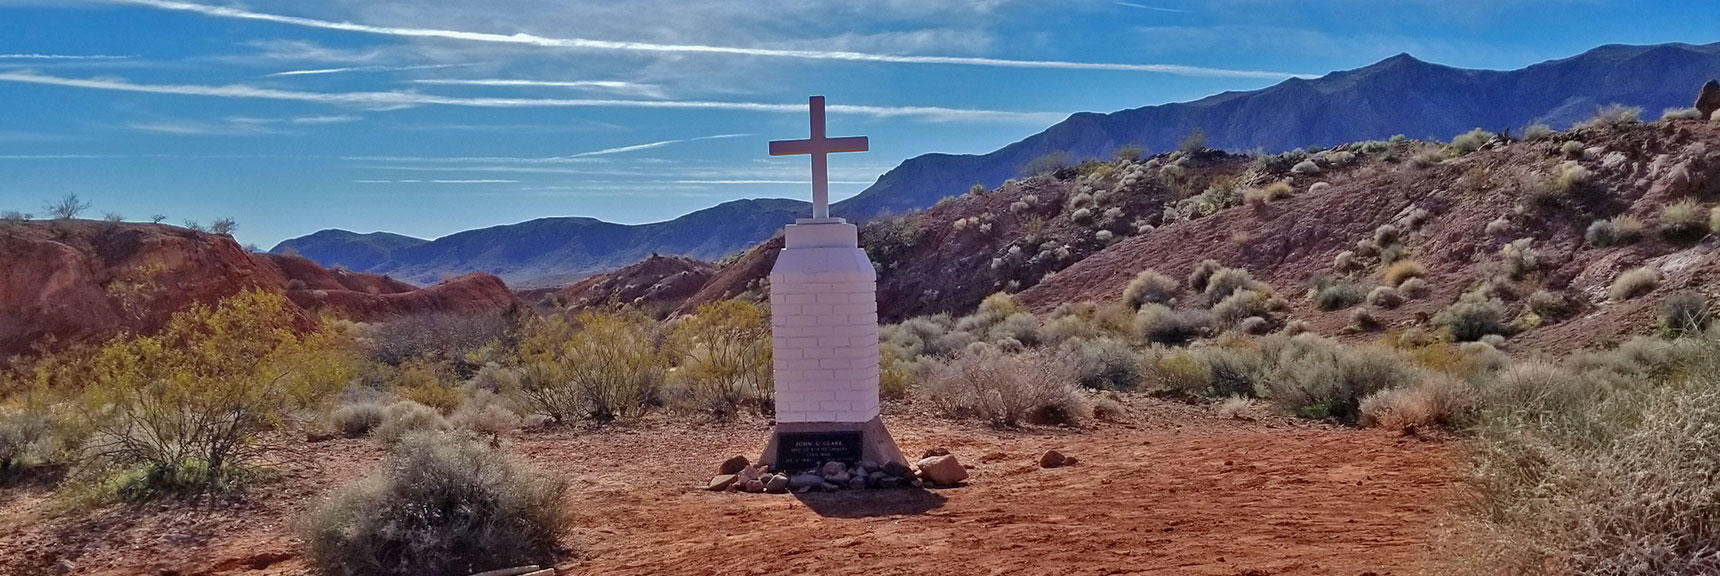 Memorial for John G. Clark at the Beginning of Charlie's Spring Trail, Valley of Fire State Park, Nevada